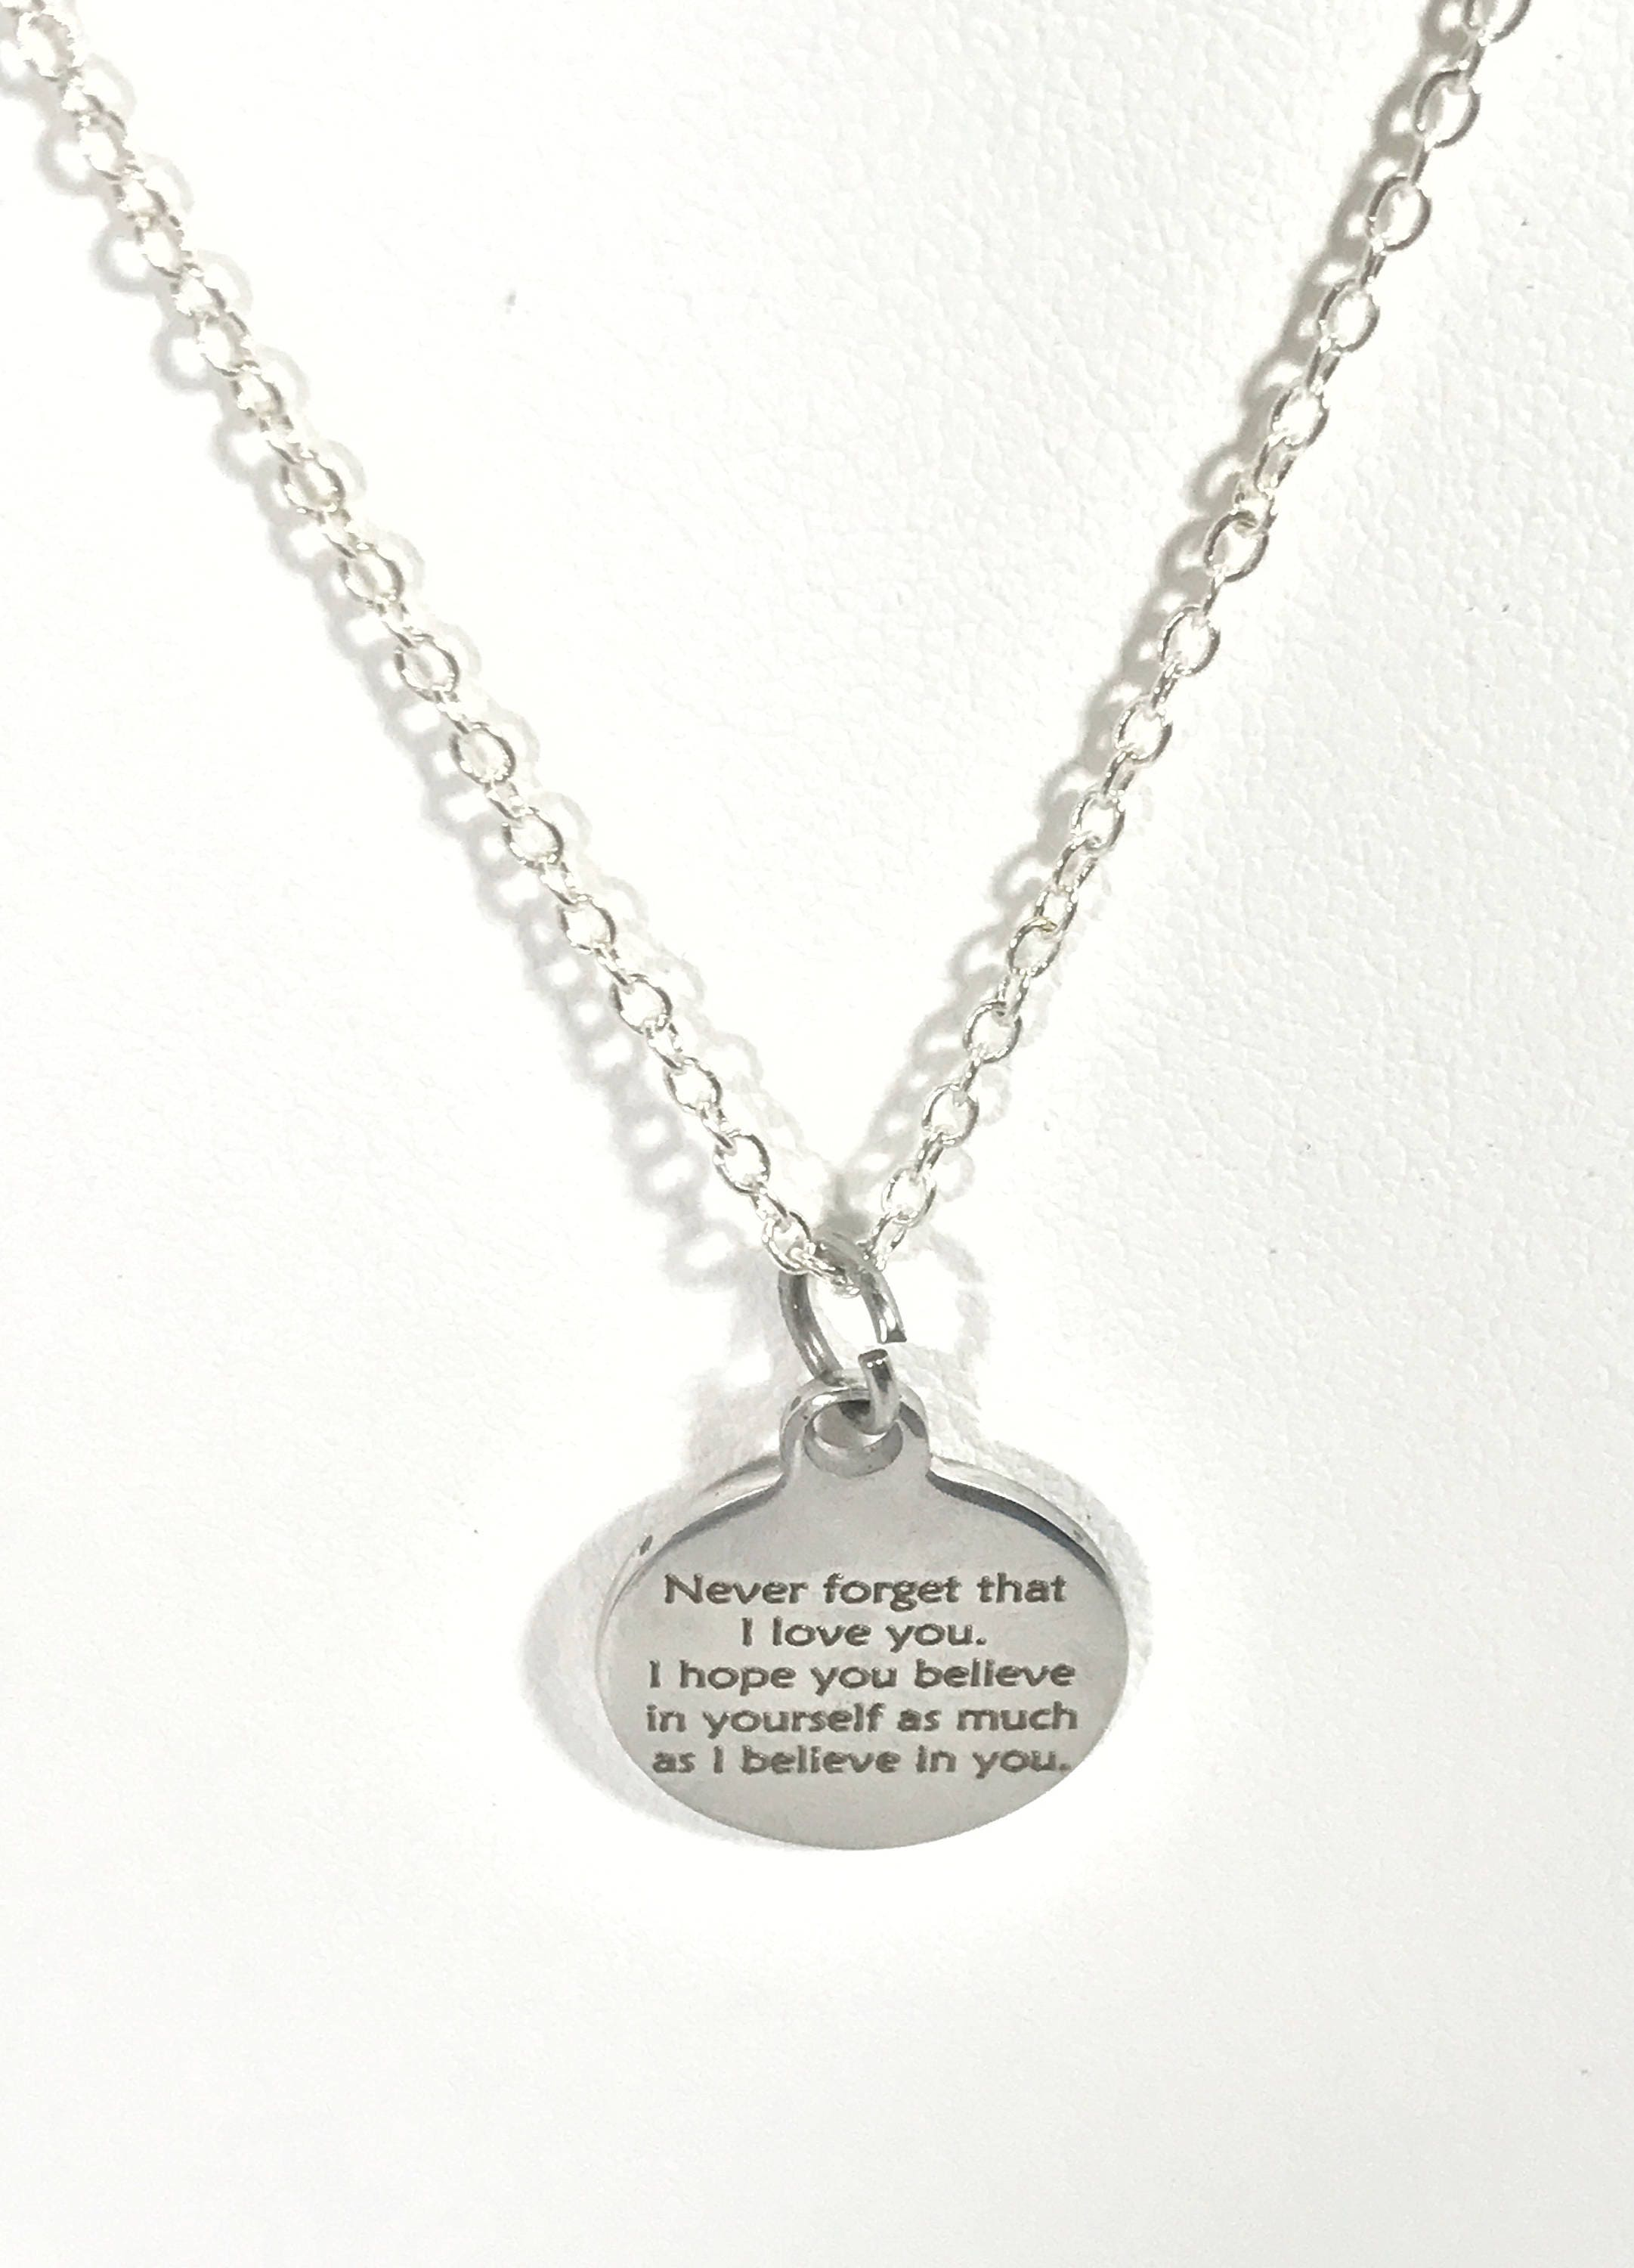 Believe in yourself necklace never forget that i love you necklace believe in yourself necklace never forget that i love you necklace i believe in you necklace encouraging daughter jewelry wife jewelry solutioingenieria Image collections